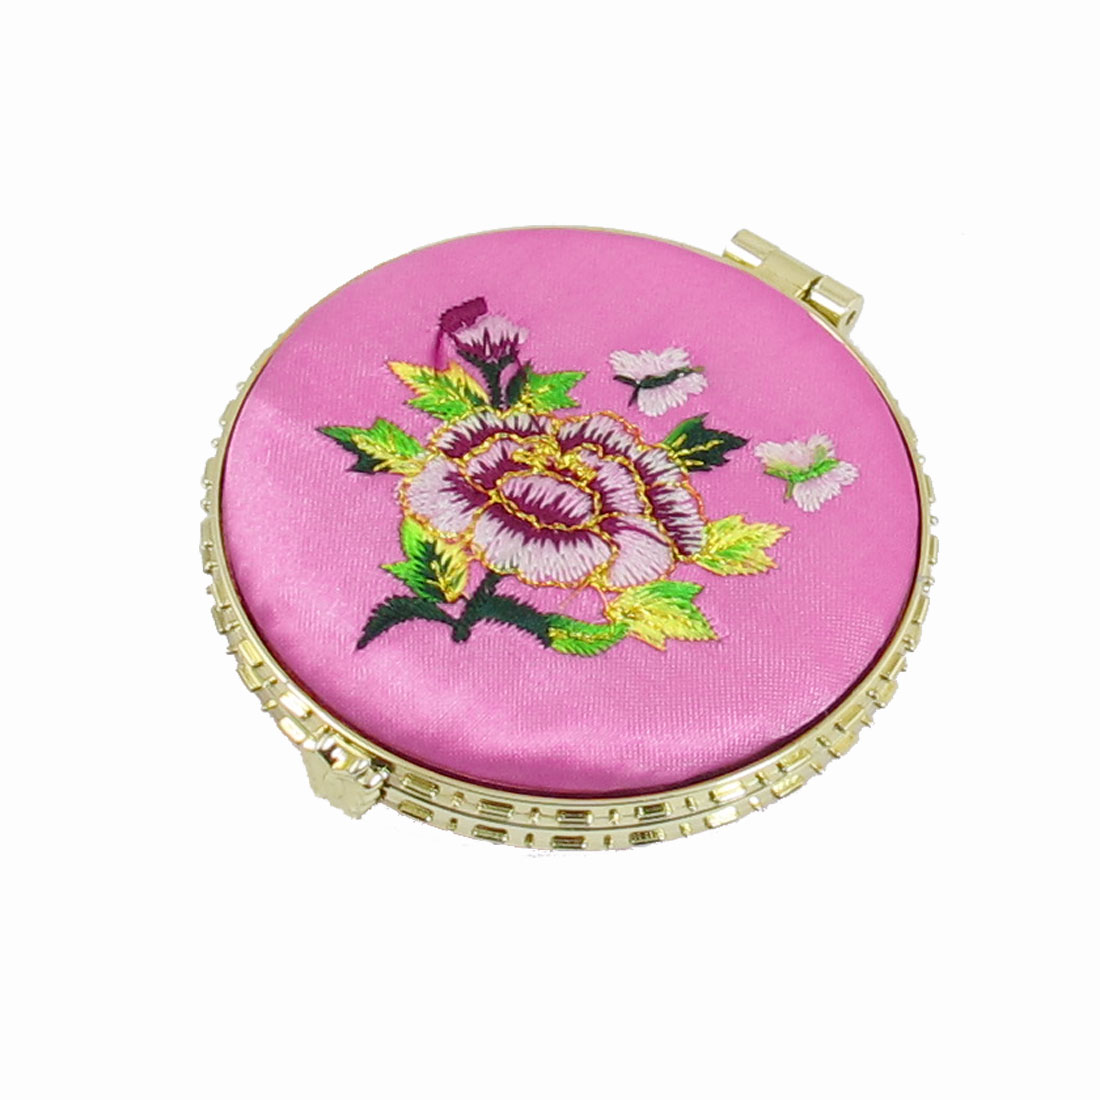 Floral Embroider Foldable Compact Mirror Light Pink Gold Tone